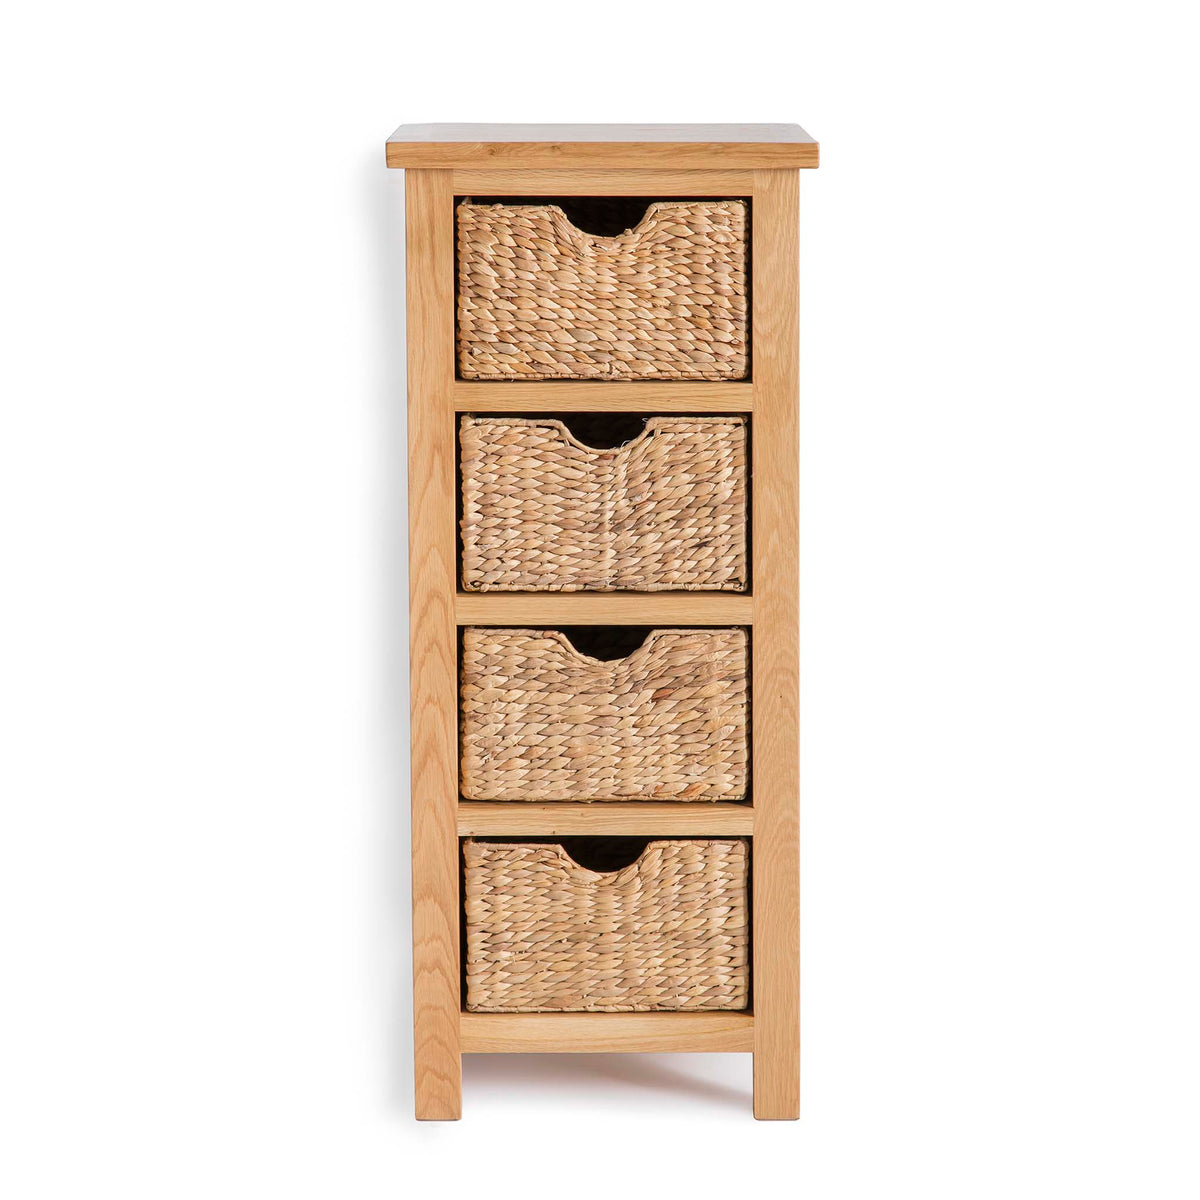 London Oak Tallboy with Baskets by Roseland Furniture